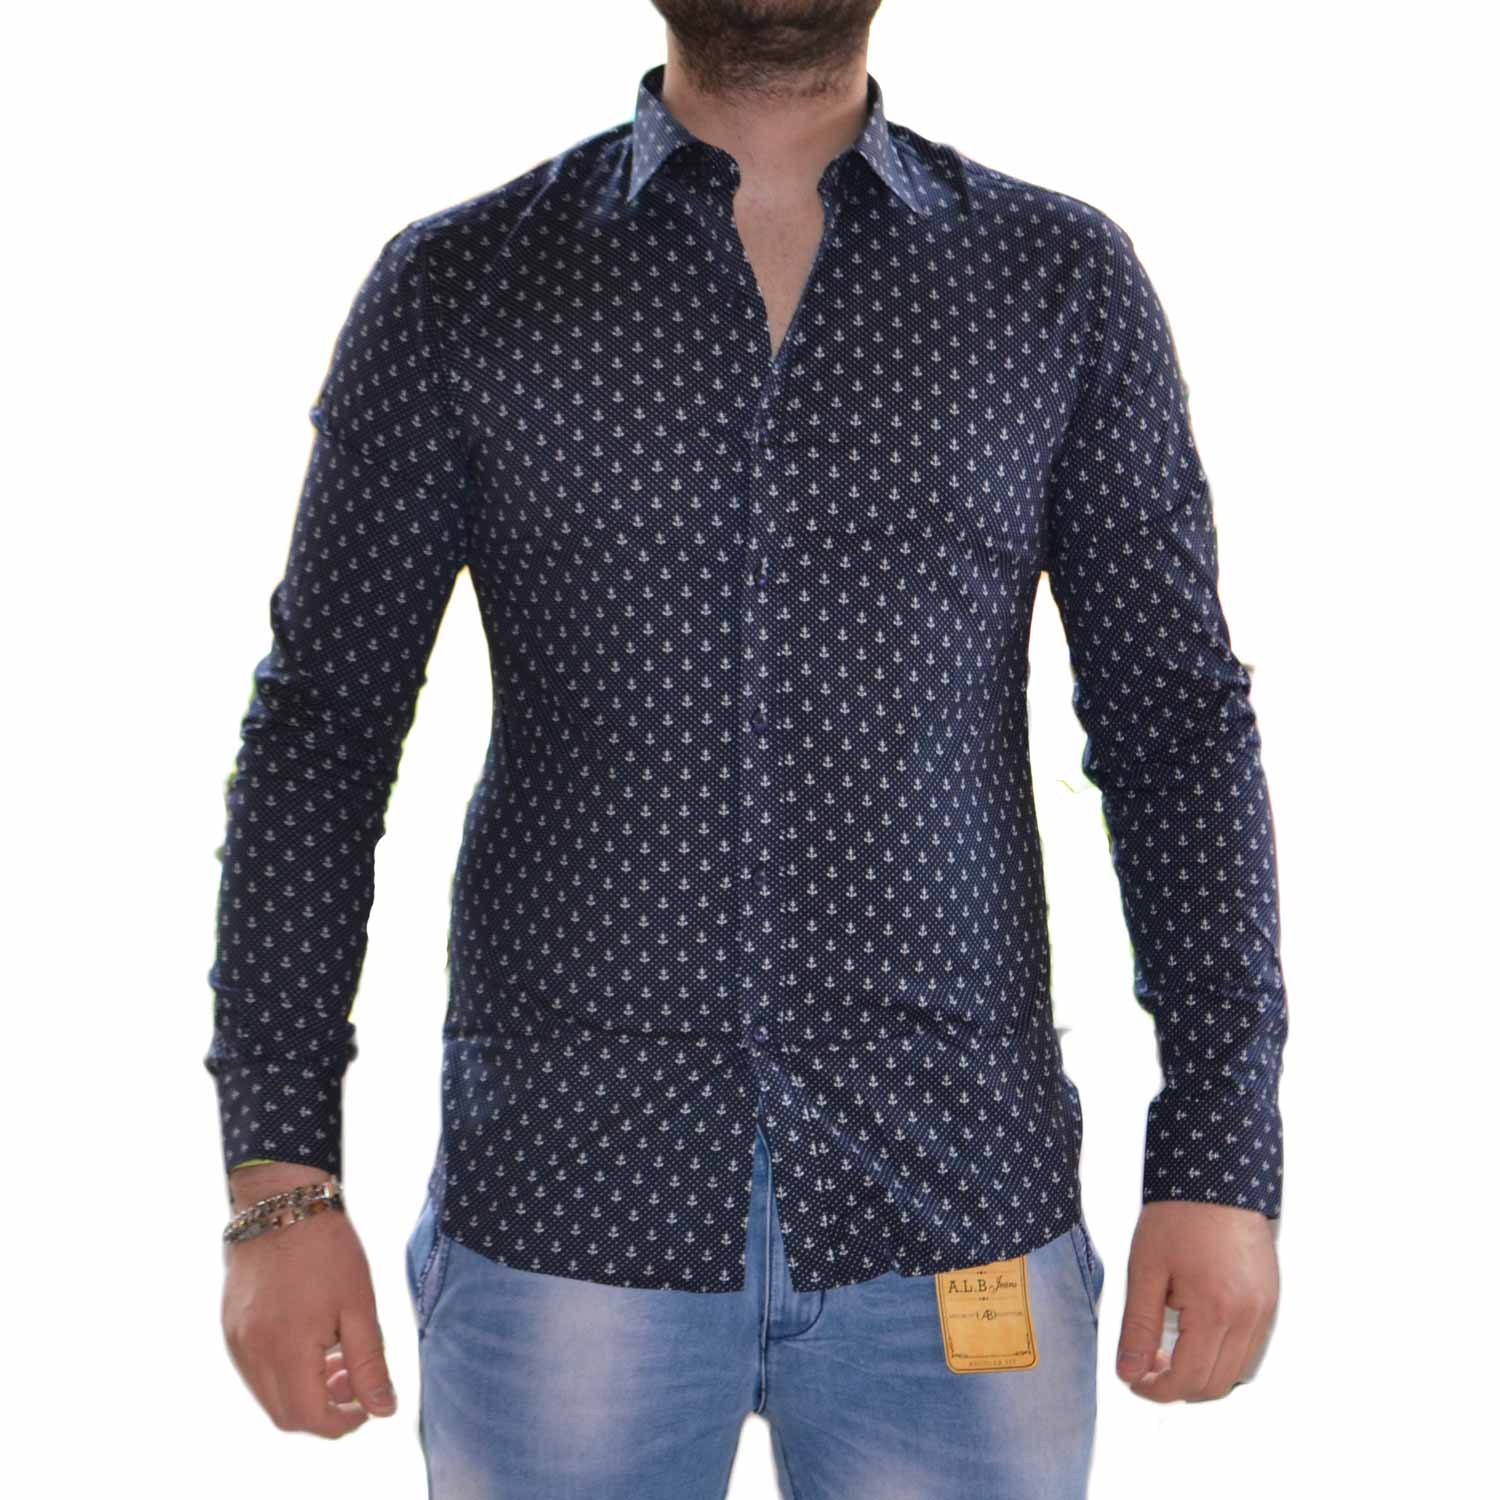 more photos 9c3e6 1ac32 Camicia Ancora Uomo Manica Lunga Cotone Pois Casual Regular uomo camicie  made in italy | MaluShoes